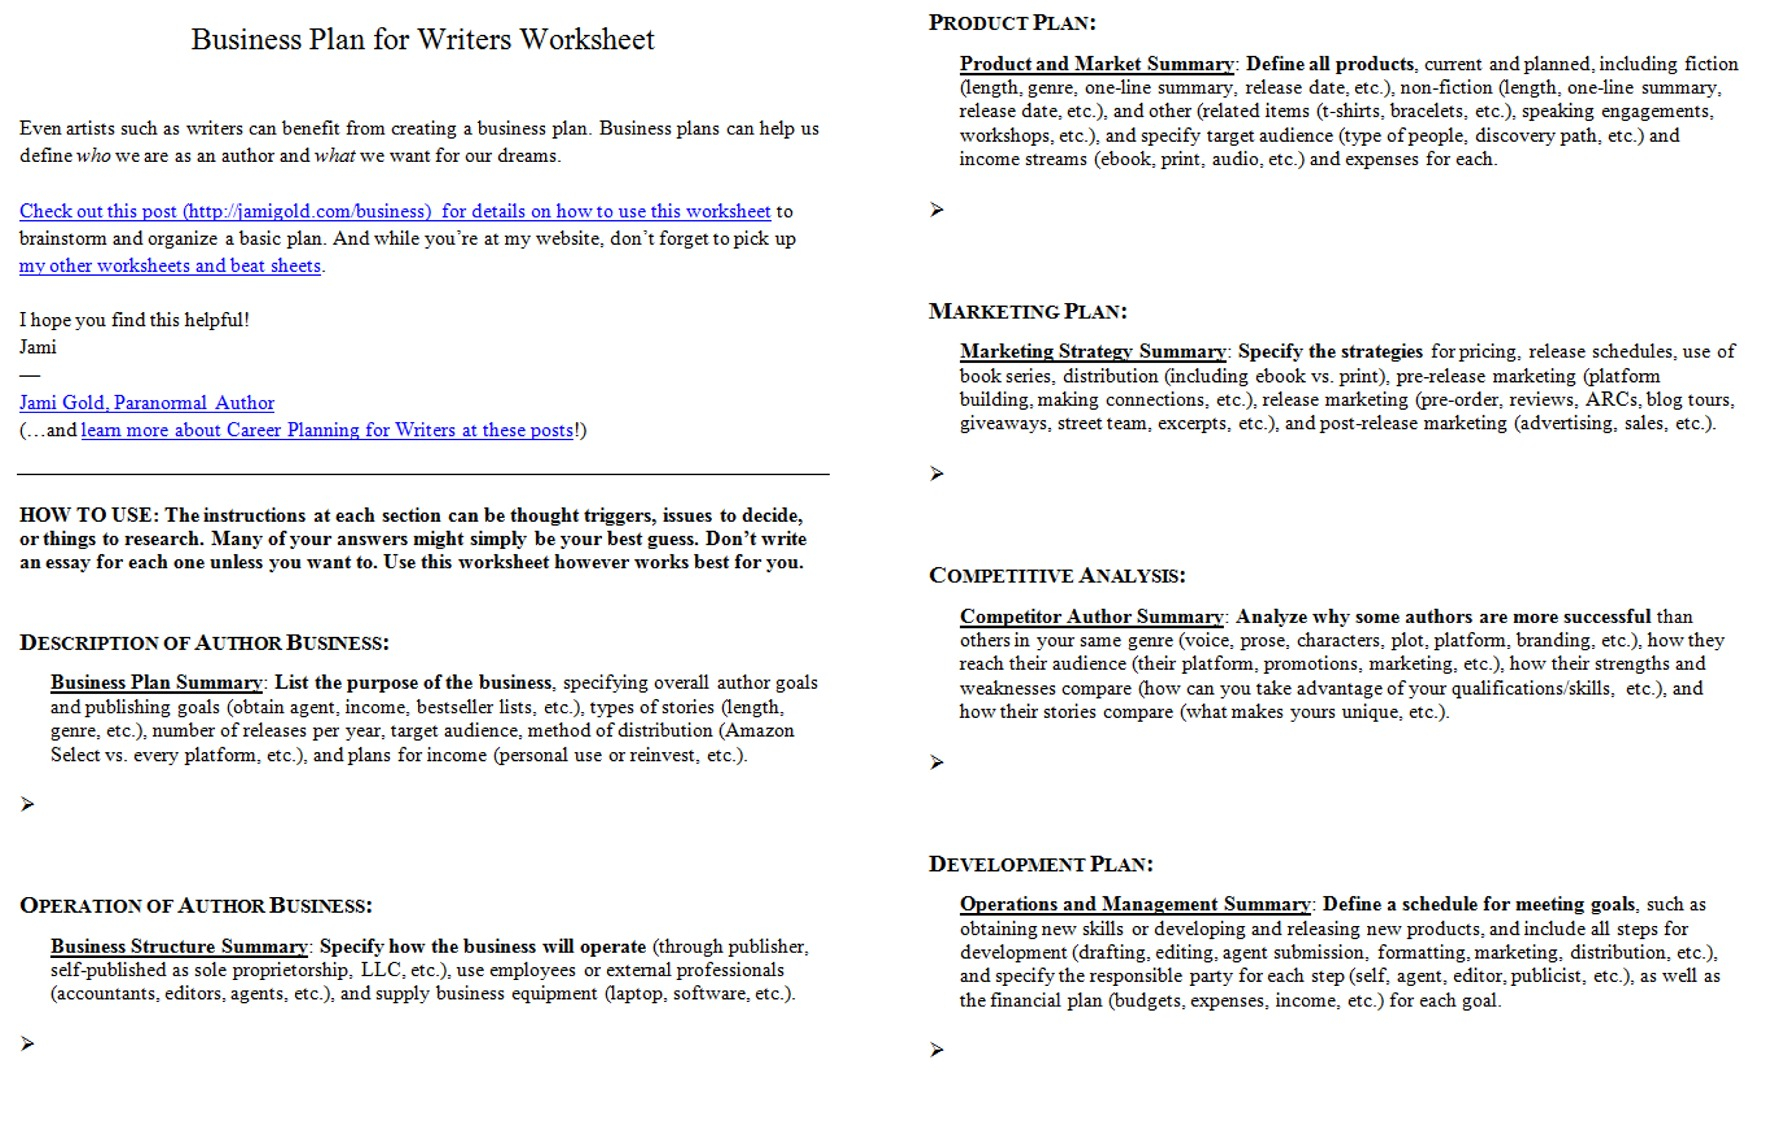 Proatmealus  Marvelous Worksheets For Writers  Jami Gold Paranormal Author With Heavenly Screen Shot Of Both Pages Of The Business Plan For Writers Worksheet With Endearing Irs Withholding Worksheet Also Rectangles Worksheet Geometry In Addition Printable Worksheets On Nouns And Water Cycle Worksheet Th Grade As Well As Writing Fractions Worksheets Additionally Percent Composition And Chemical Formulas Worksheet Answers From Jamigoldcom With Proatmealus  Heavenly Worksheets For Writers  Jami Gold Paranormal Author With Endearing Screen Shot Of Both Pages Of The Business Plan For Writers Worksheet And Marvelous Irs Withholding Worksheet Also Rectangles Worksheet Geometry In Addition Printable Worksheets On Nouns From Jamigoldcom